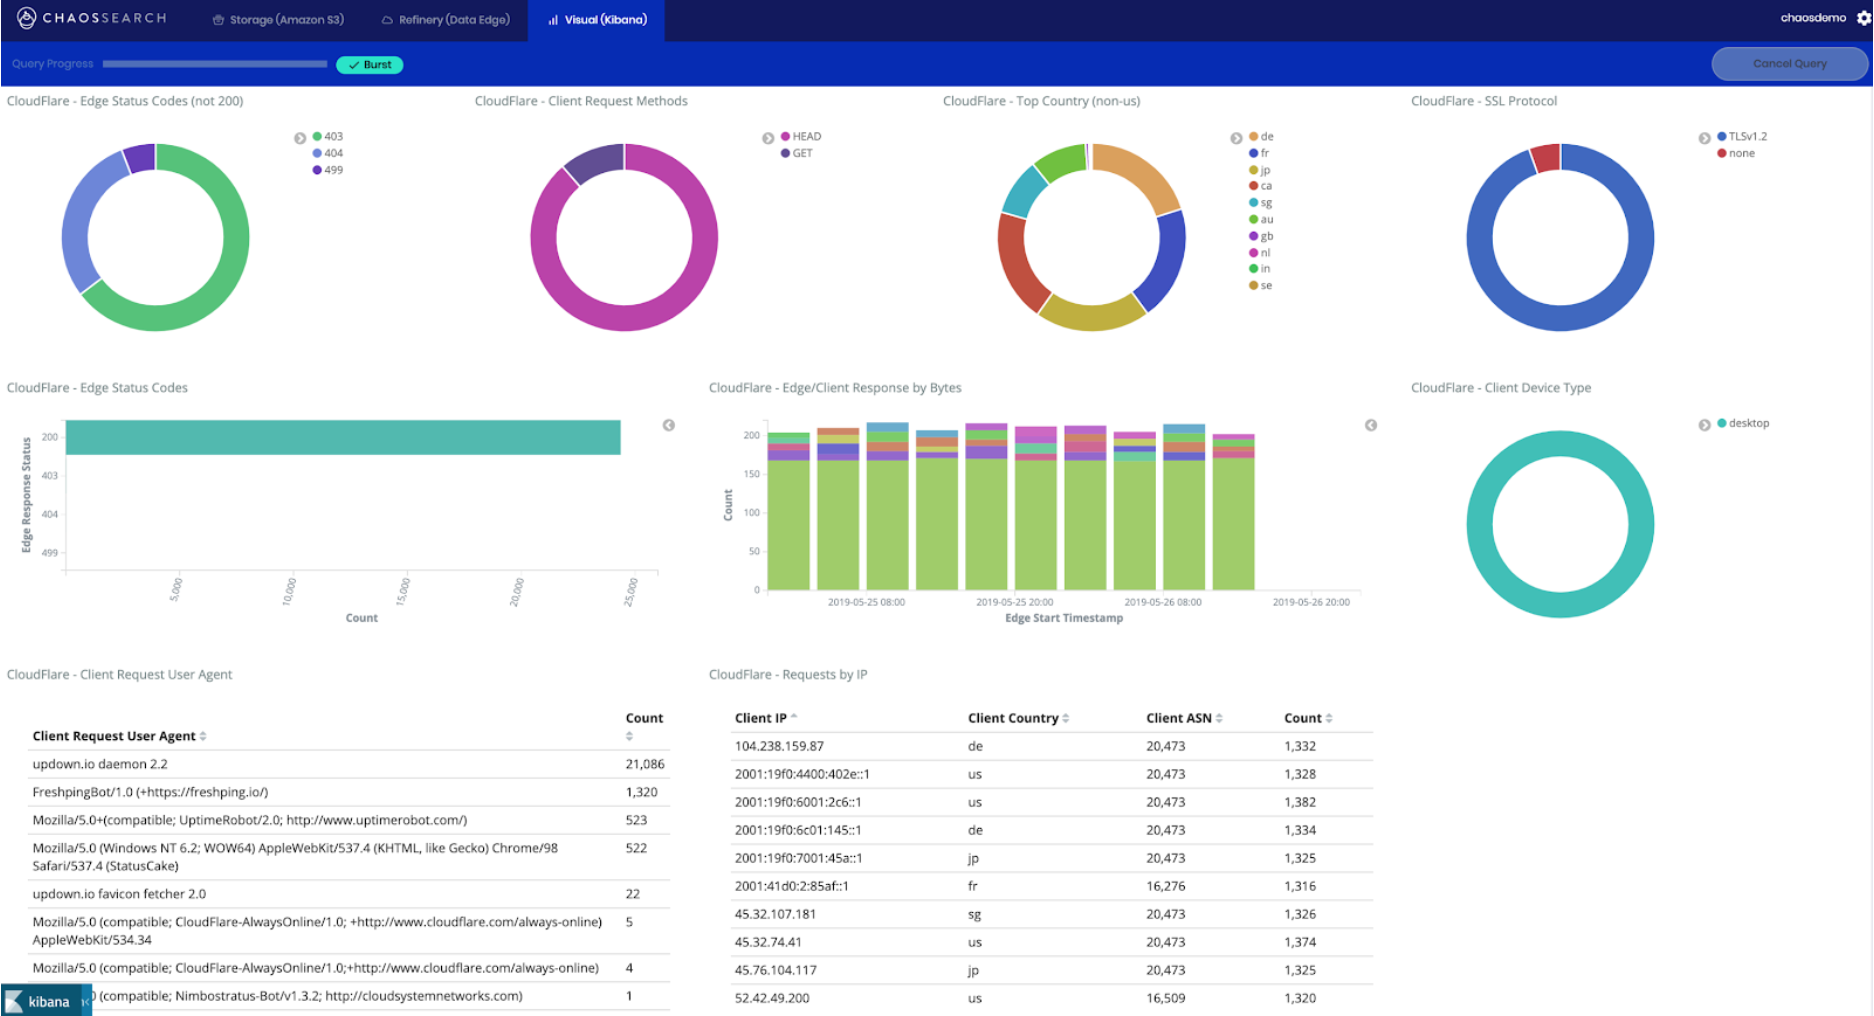 CHAOSSEARCH dashboard with Cloudflare data